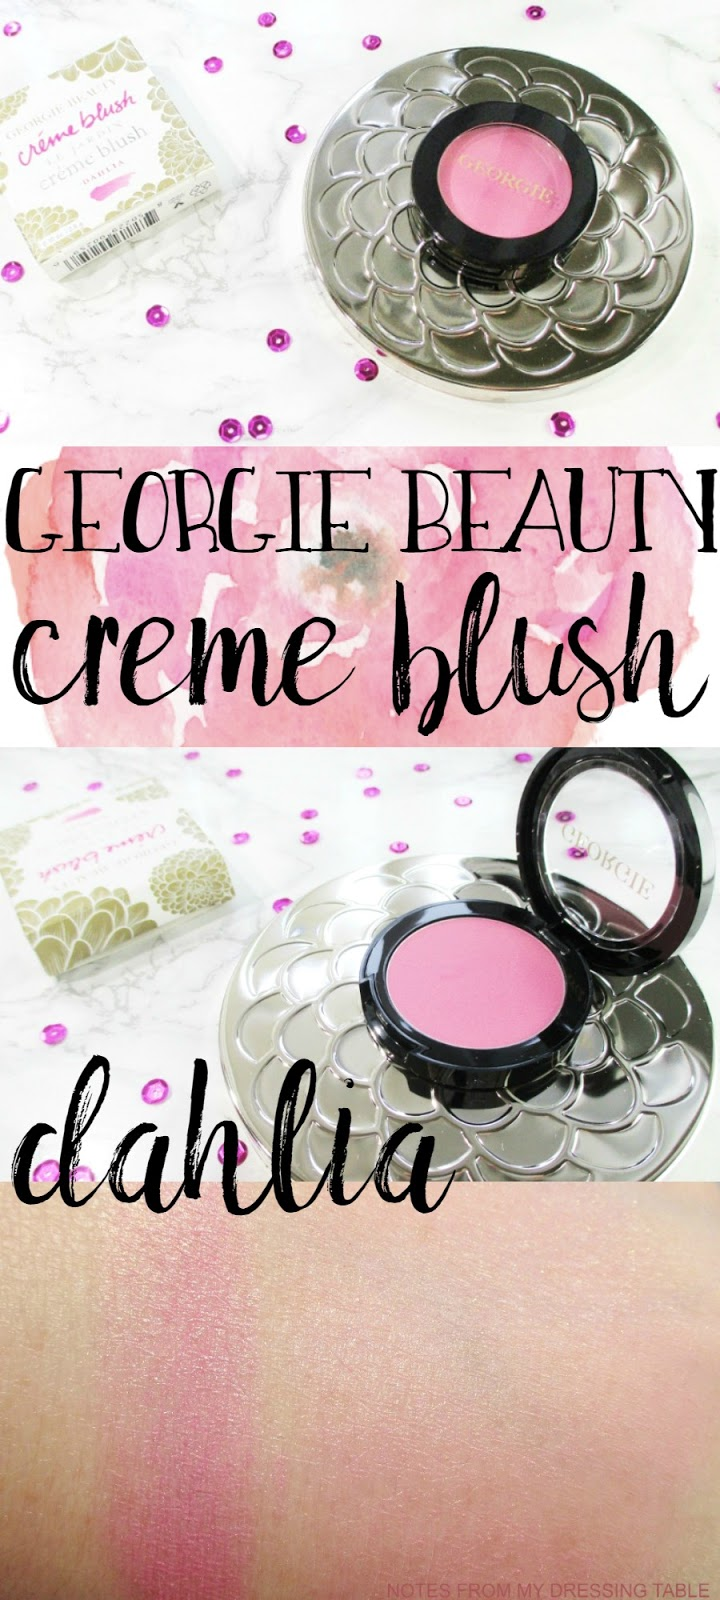 georgie-beauty-creme-blush-4